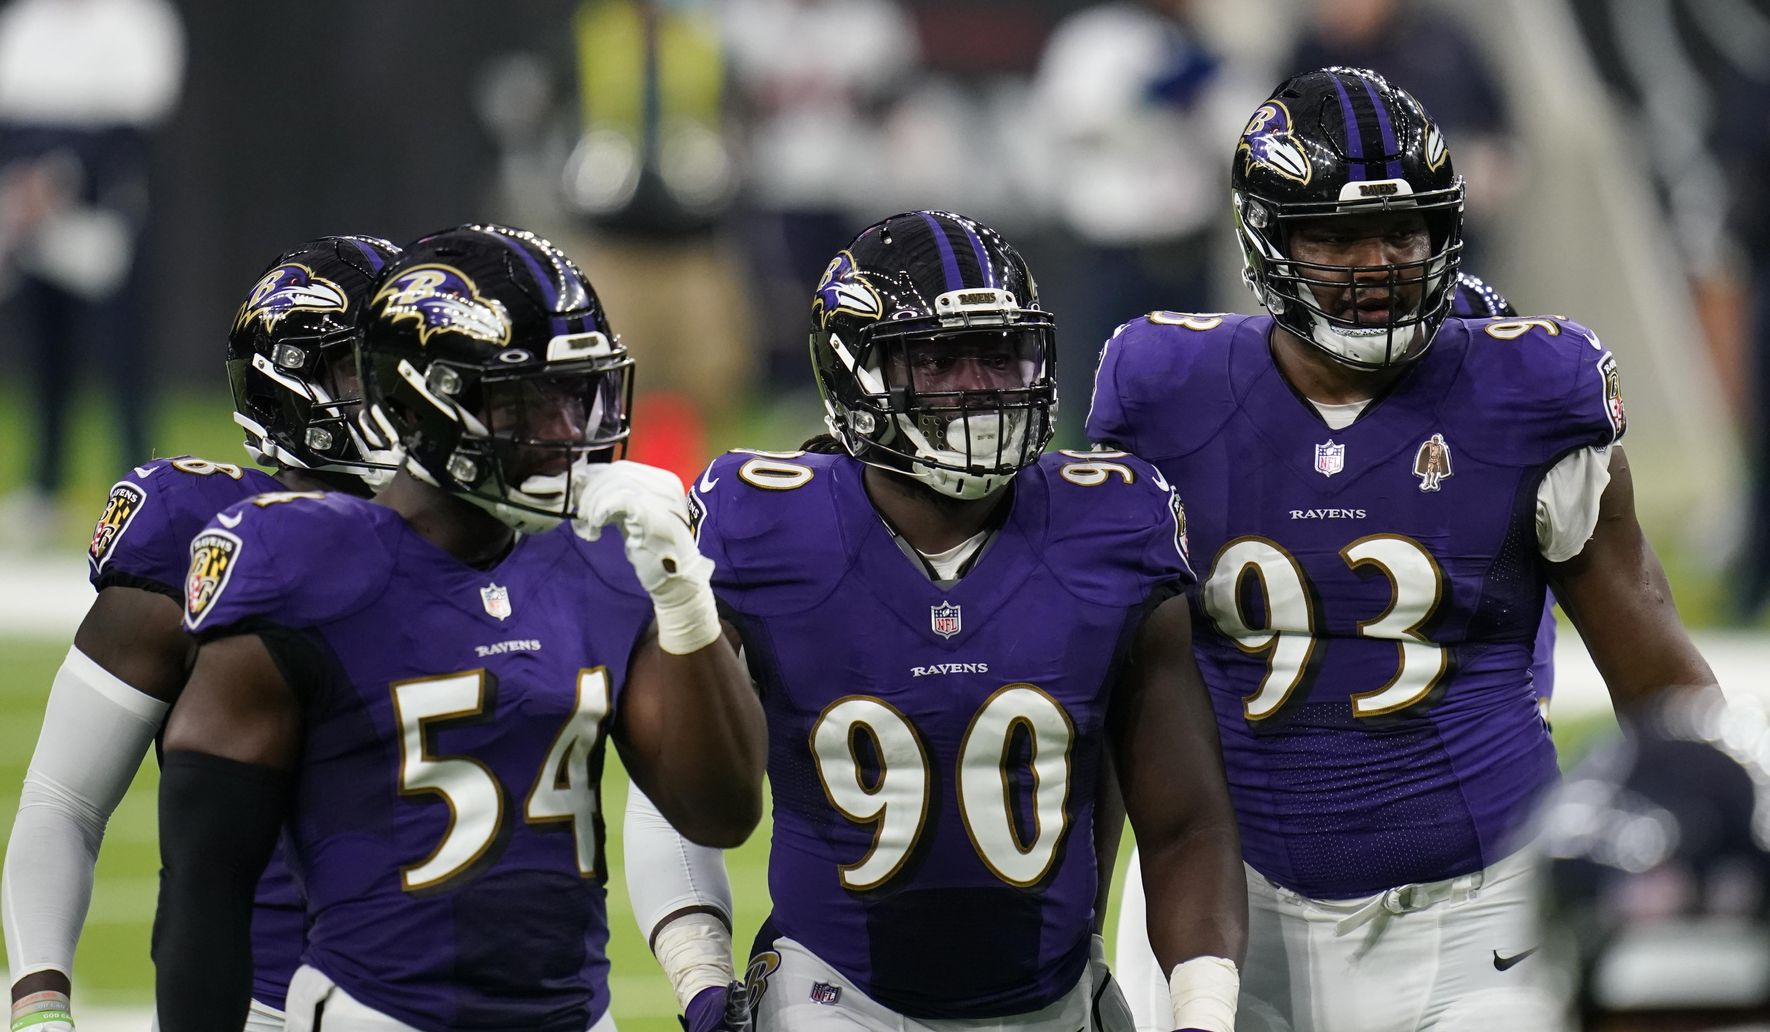 Ravens_defense_football_32037_c0-213-5100-3186_s1770x1032